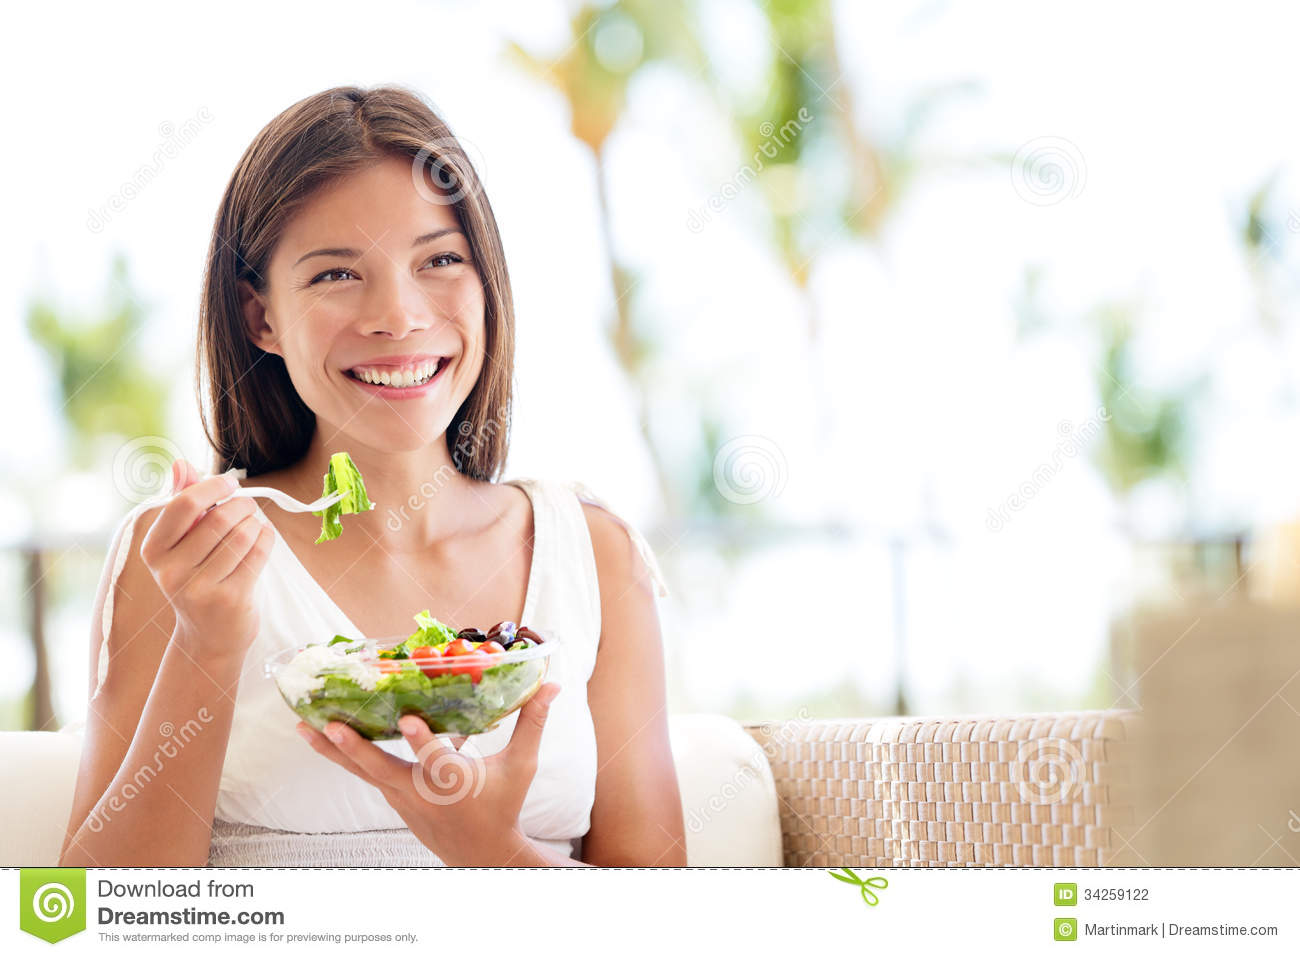 healthy-lifestyle-woman-eating-salad-smiling-happy-outdoors-beautiful-day-young-female-food-outside-summer-34259122.jpg